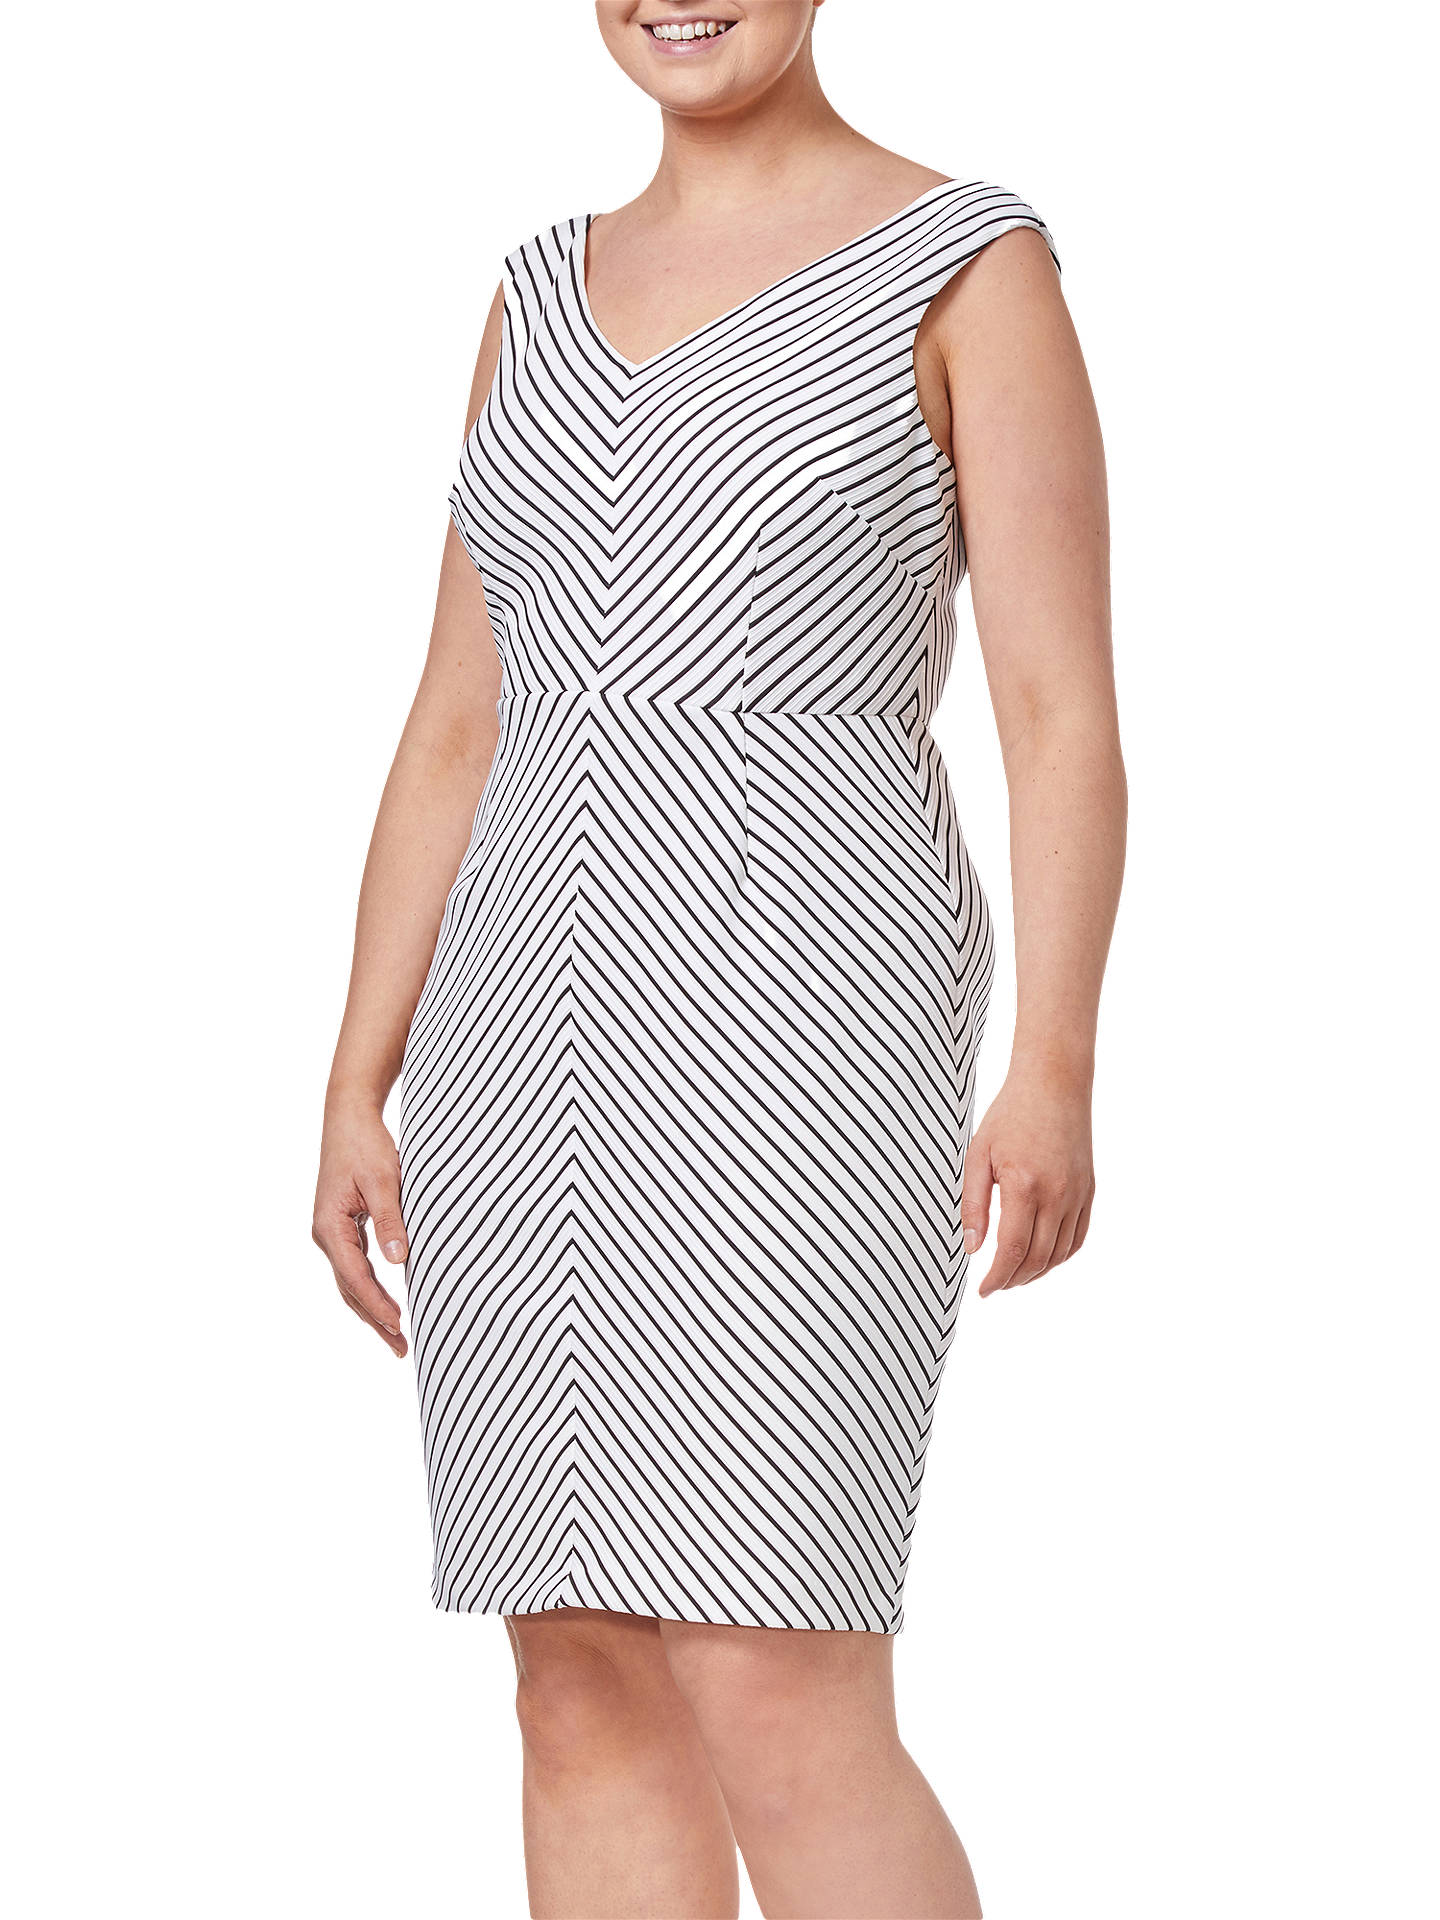 BuyAdrianna Papell Striped Dress, Black/Ivory, 20 Online at johnlewis.com